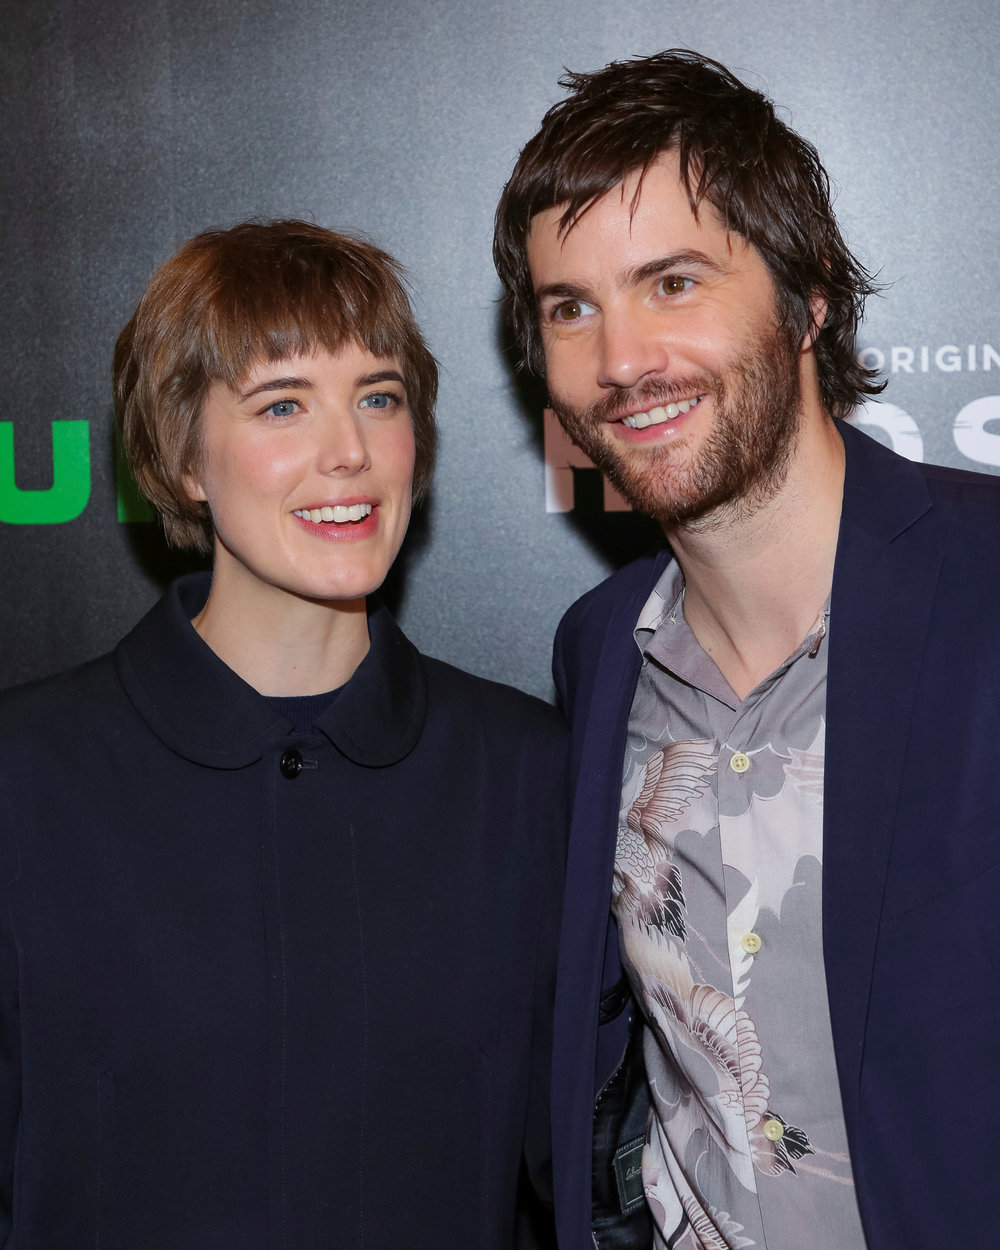 """Model/actress Agyness Deyn, left, and actor Jim Sturgess attend the Hulu original series premiere of """"Hard Sun"""" at Regal Union Square on Wednesday, Feb. 28, 2018, in New York. (Photo by Brent N. Clarke/Invision/AP)"""